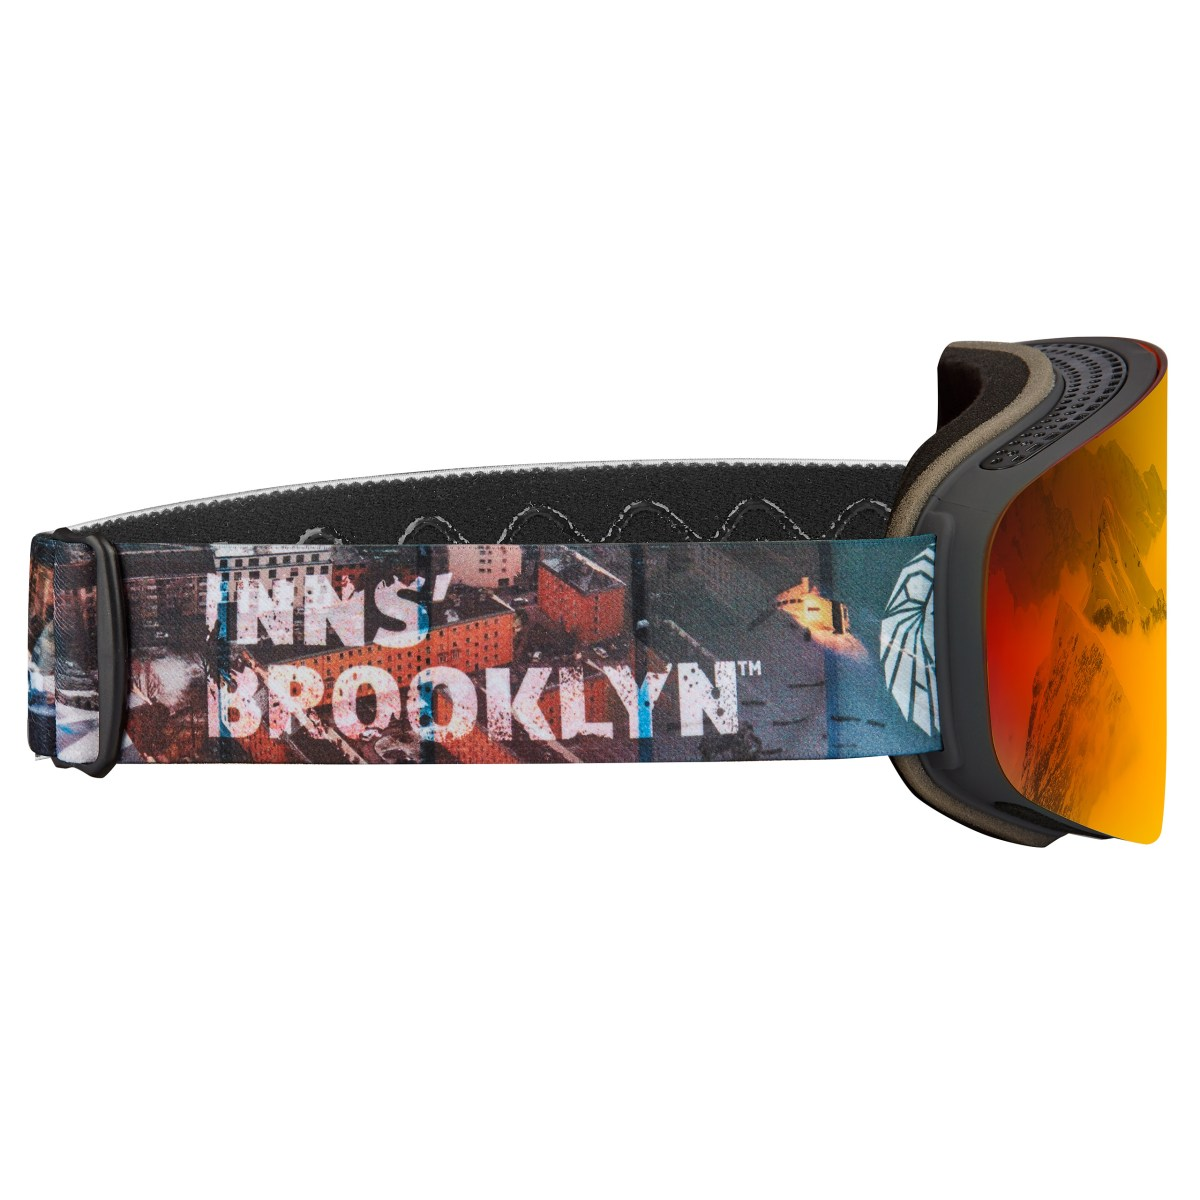 DELAYON Eyewear Innsbrooklyn Goggle Space Fire by Quirin Müller and Paul Gilmore